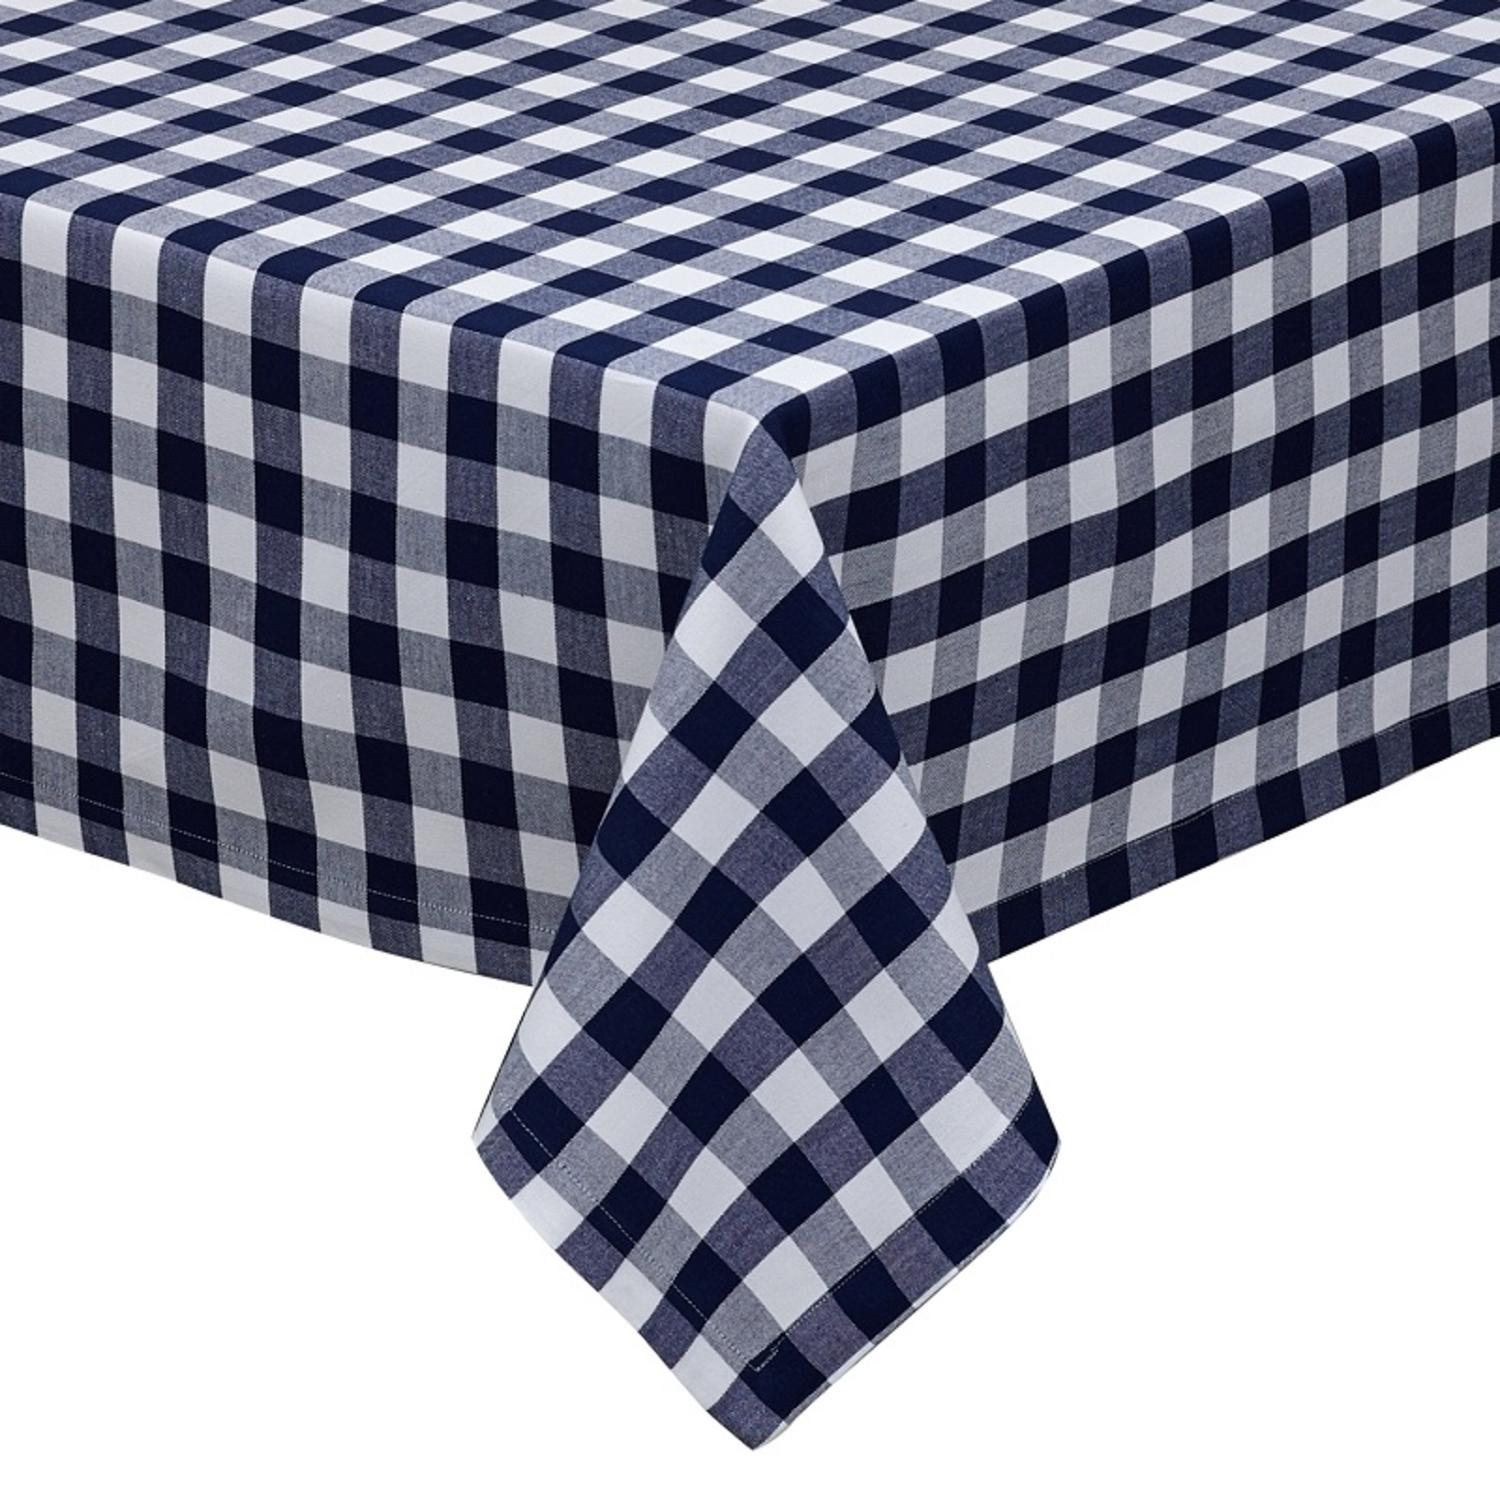 The Pioneer Woman Charming Check Tablecloth, Teal, Available In Multiple  Sizes   Walmart.com